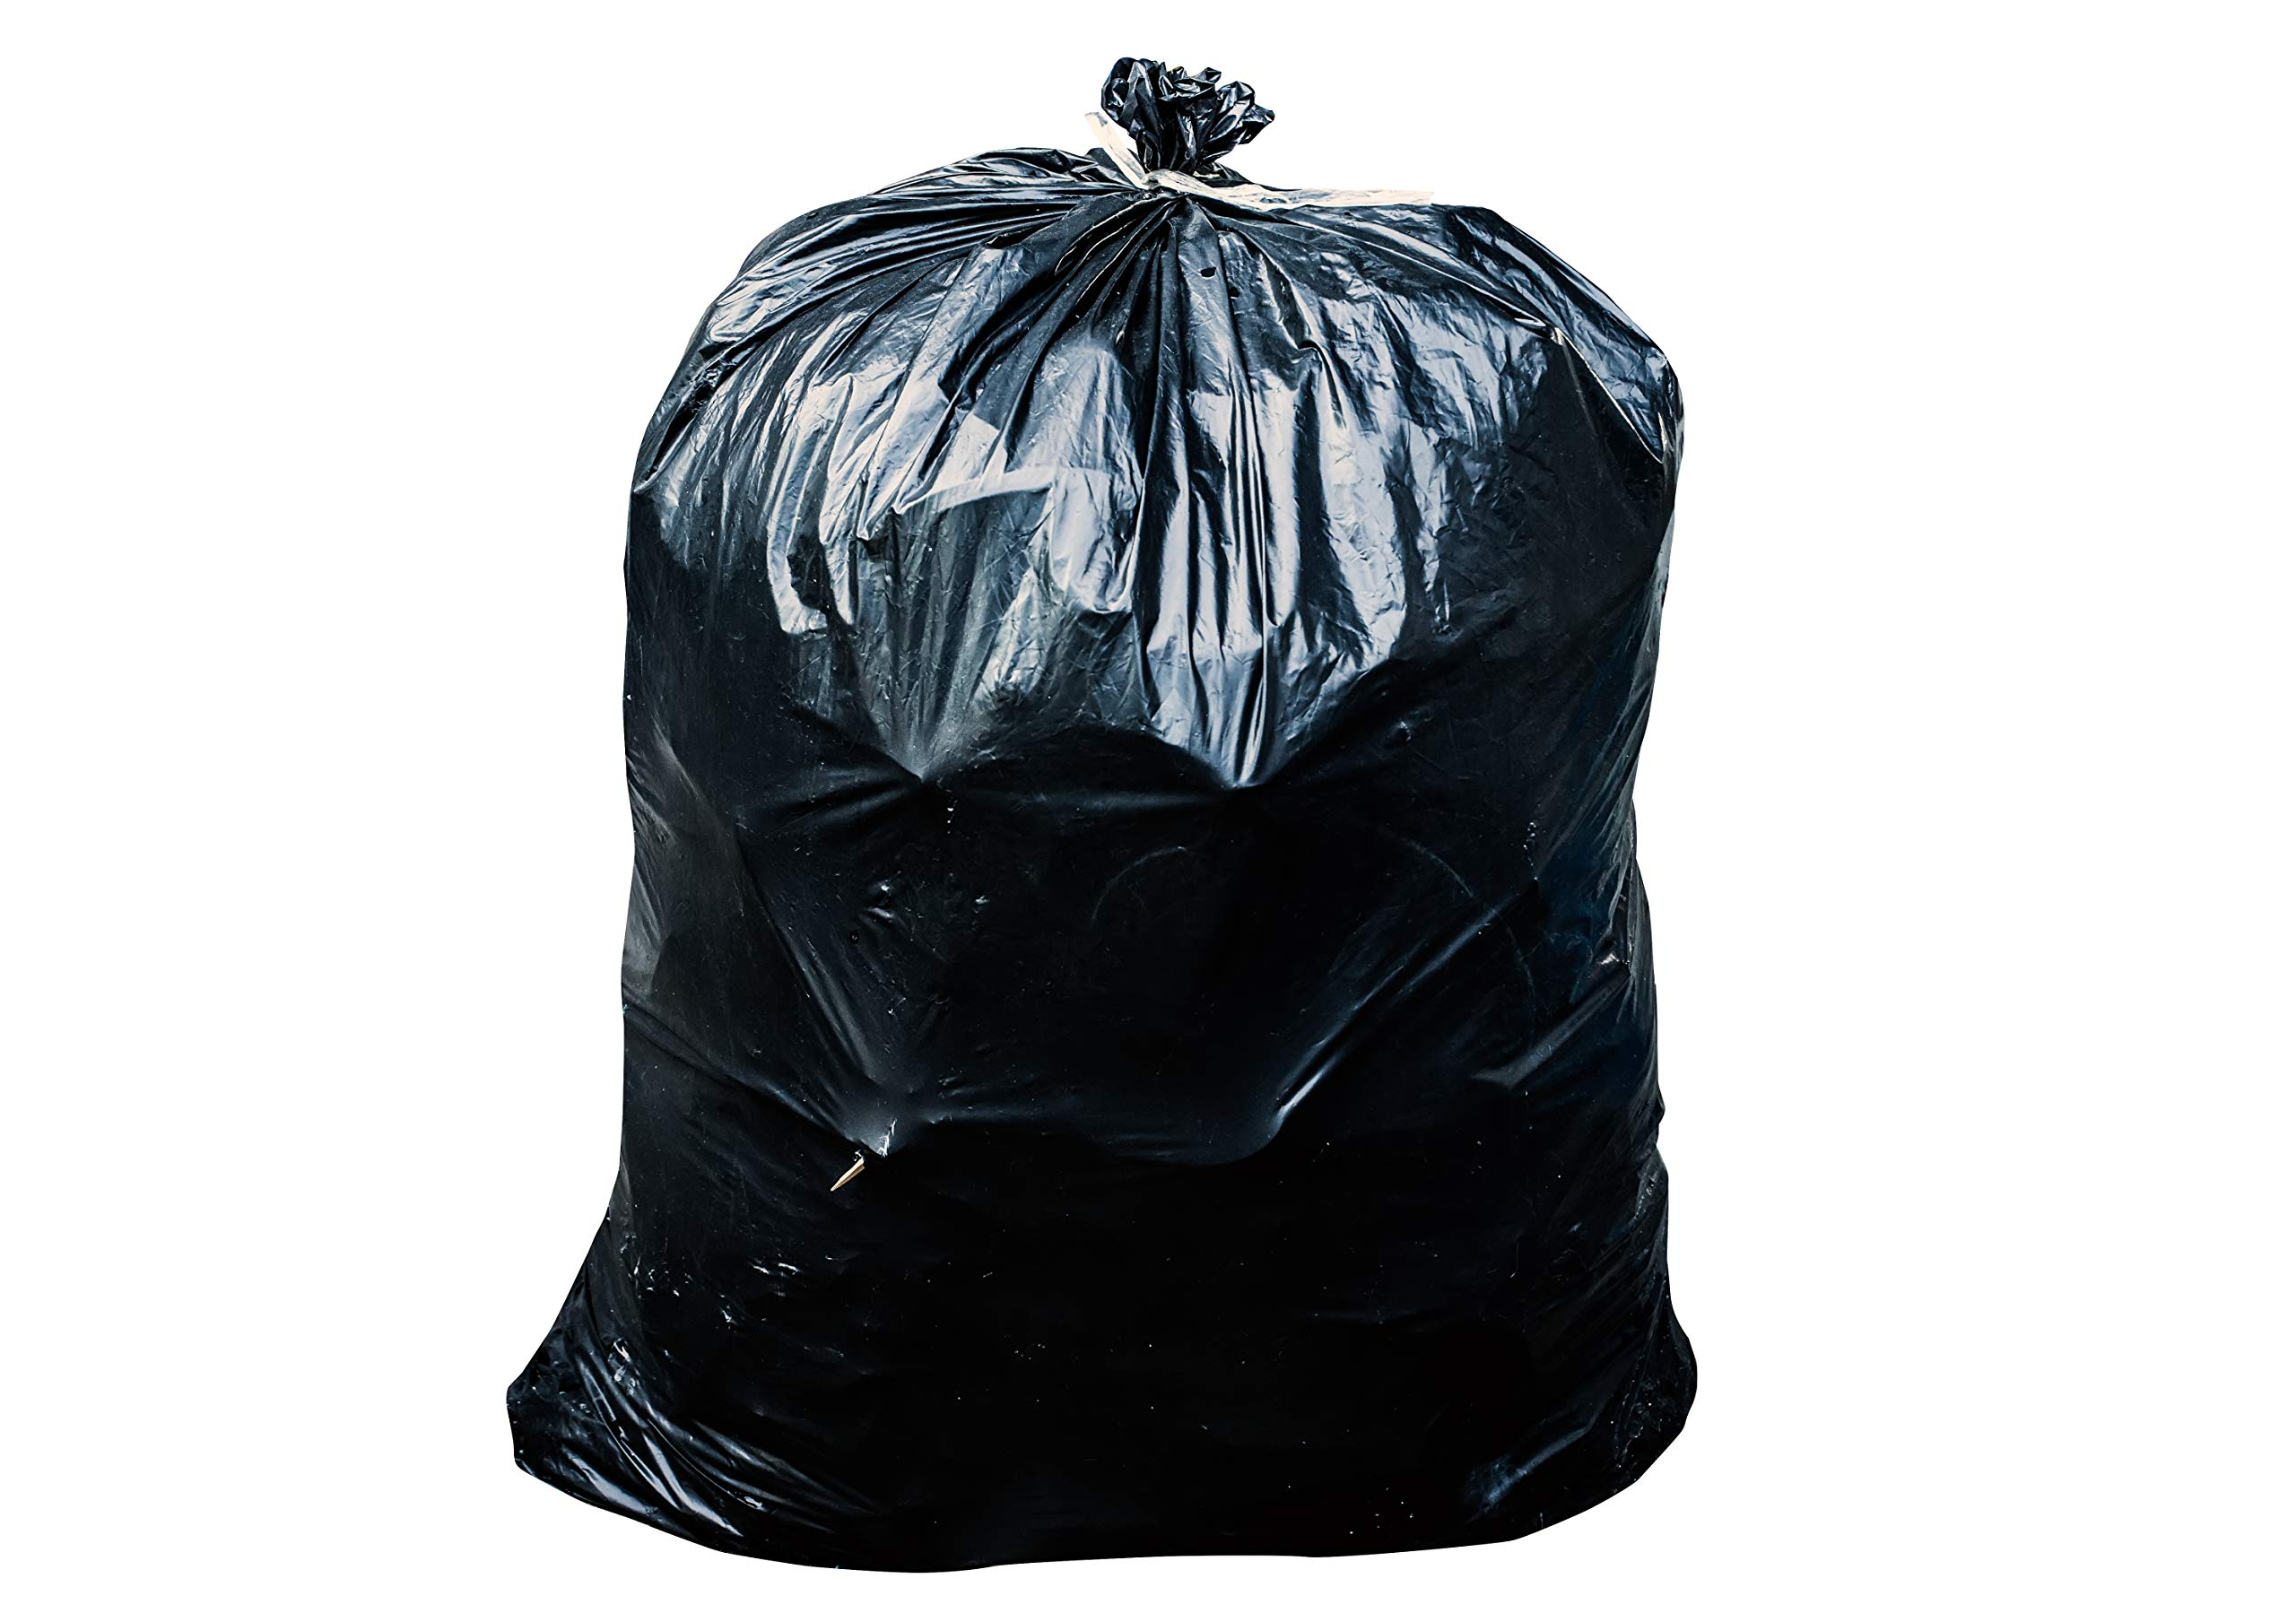 ToughBag 55-60 Gallon Trash Bags, 38W x 58H, 1.2 Mil, Black, 100 / Case by ToughBag